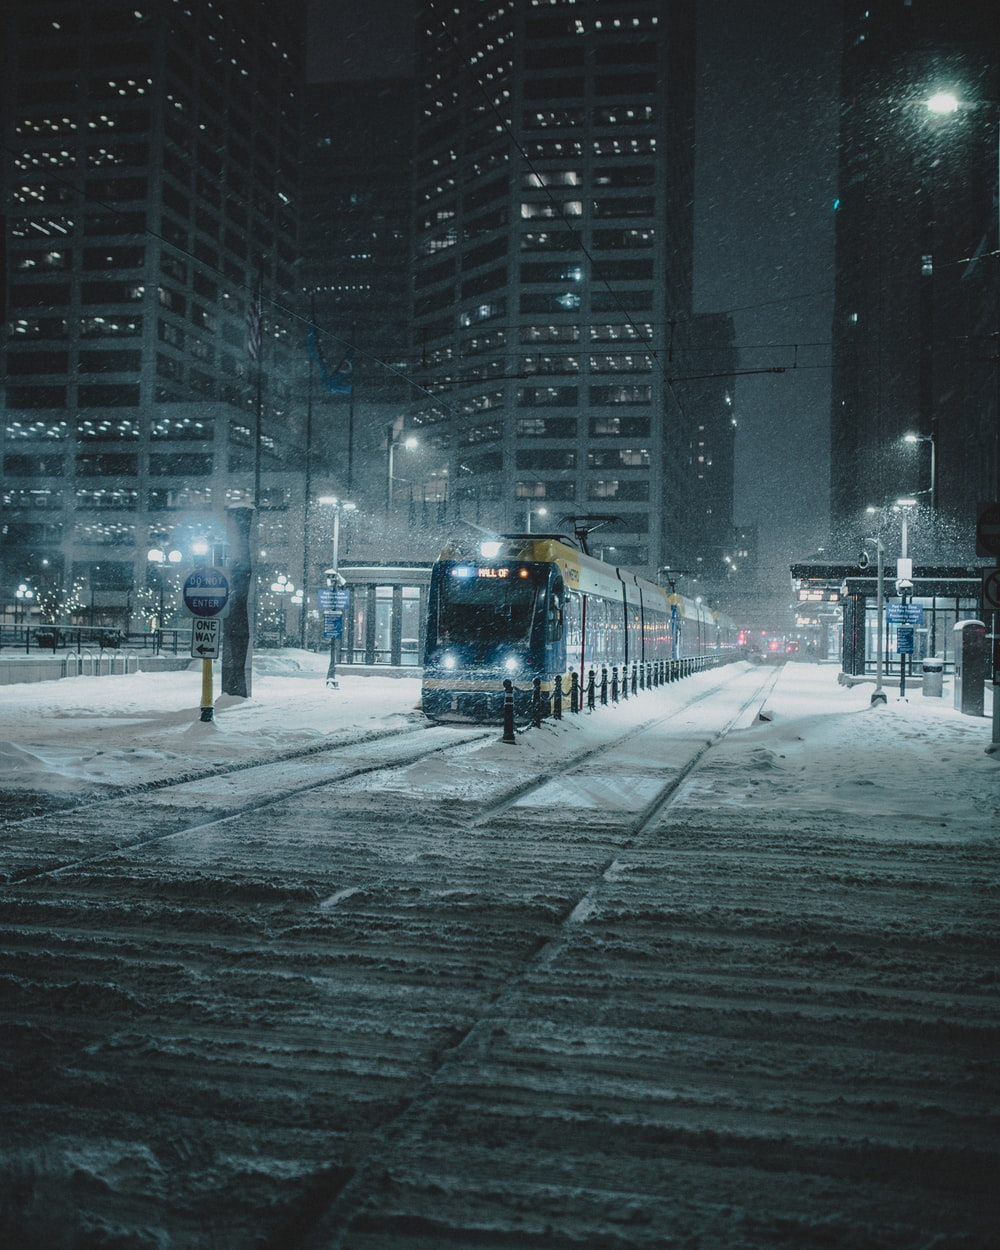 train on track at night during a snowy weather